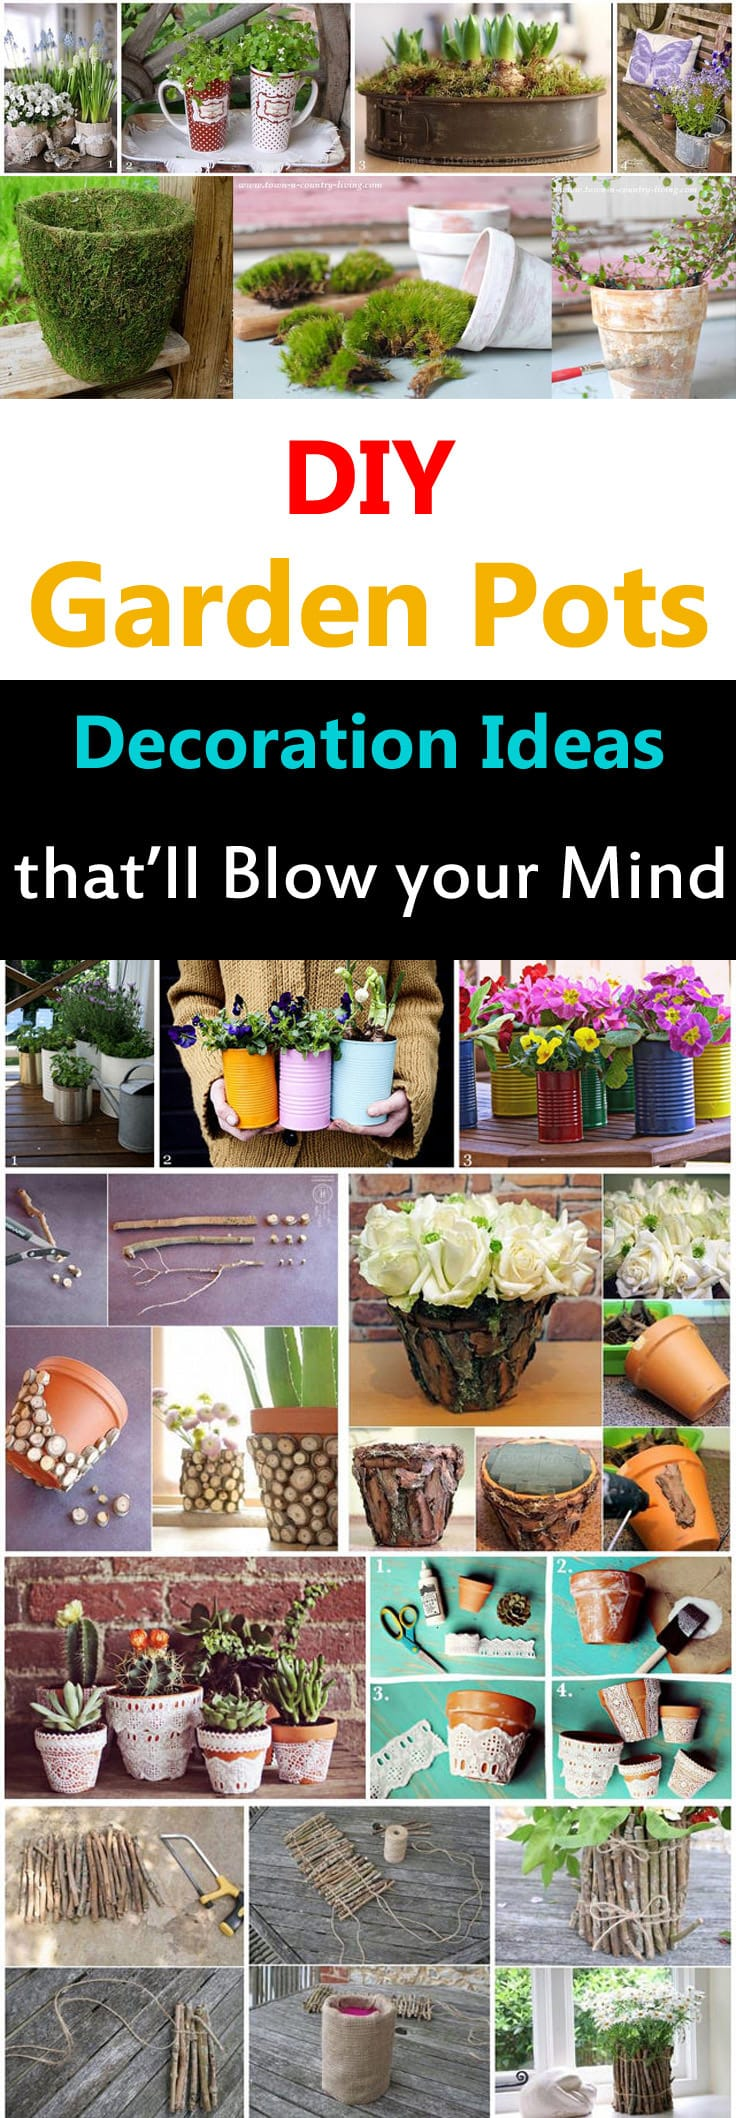 Diy Garden Pots Diy garden pots decoration ideas thatll blow your mind do you have pots used or unused old or new if yes then workwithnaturefo